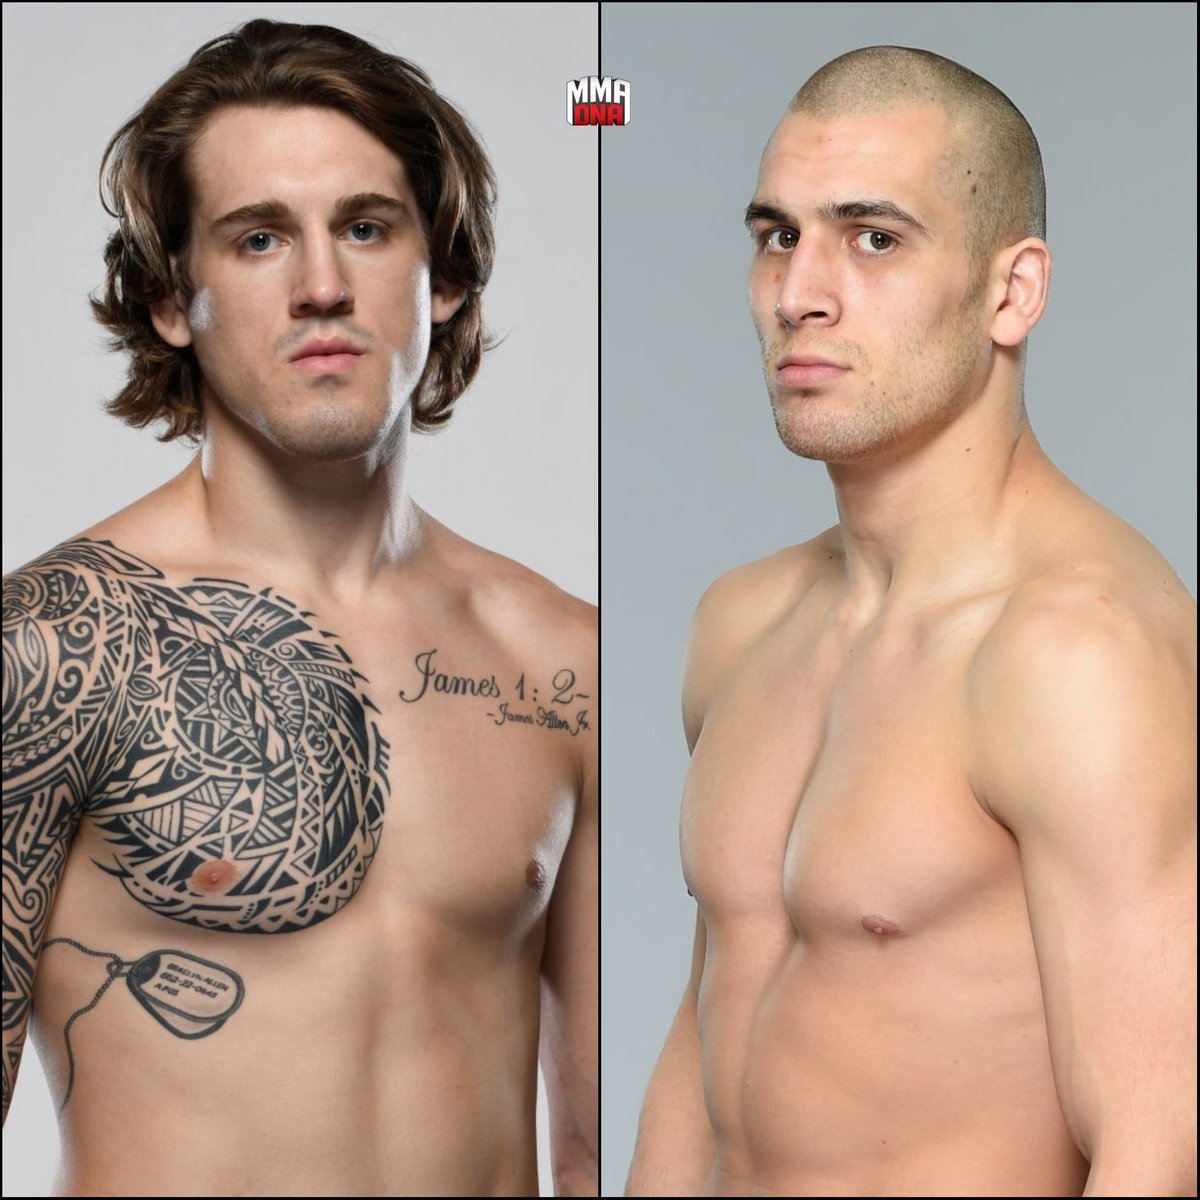 Brendan Allen will fight Tom Breese at UFN 169 in Norfolk, Virginia. (Feb. 29, 2020). (per @virginianpilot) #UFC #UFCNorfolk #MMA #UFCESPN